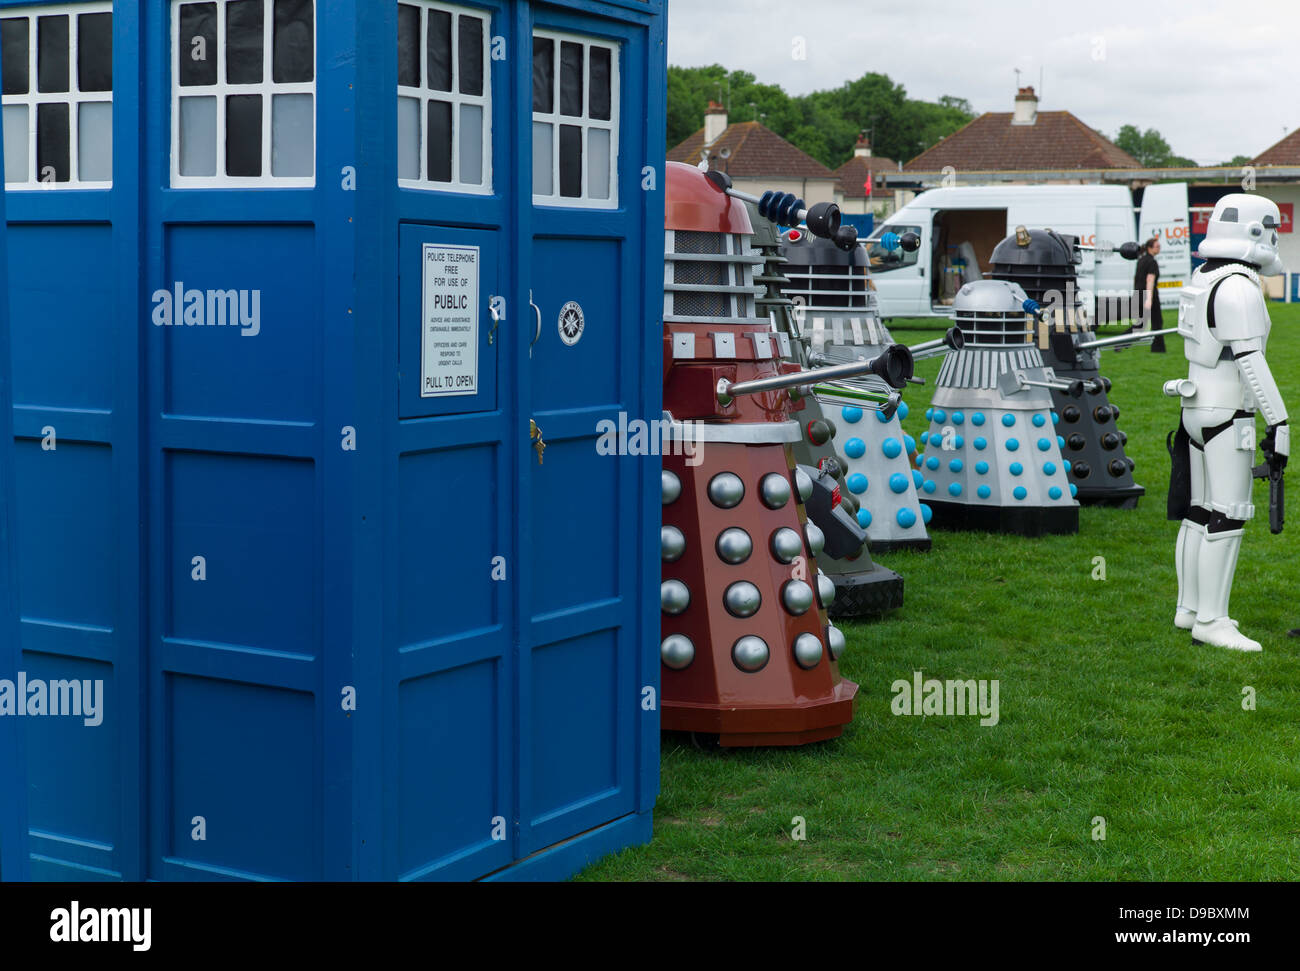 The Tardis, Daleks and a storm Trooper line up at the Herne Bay Si-Fi by the sea event - Stock Image